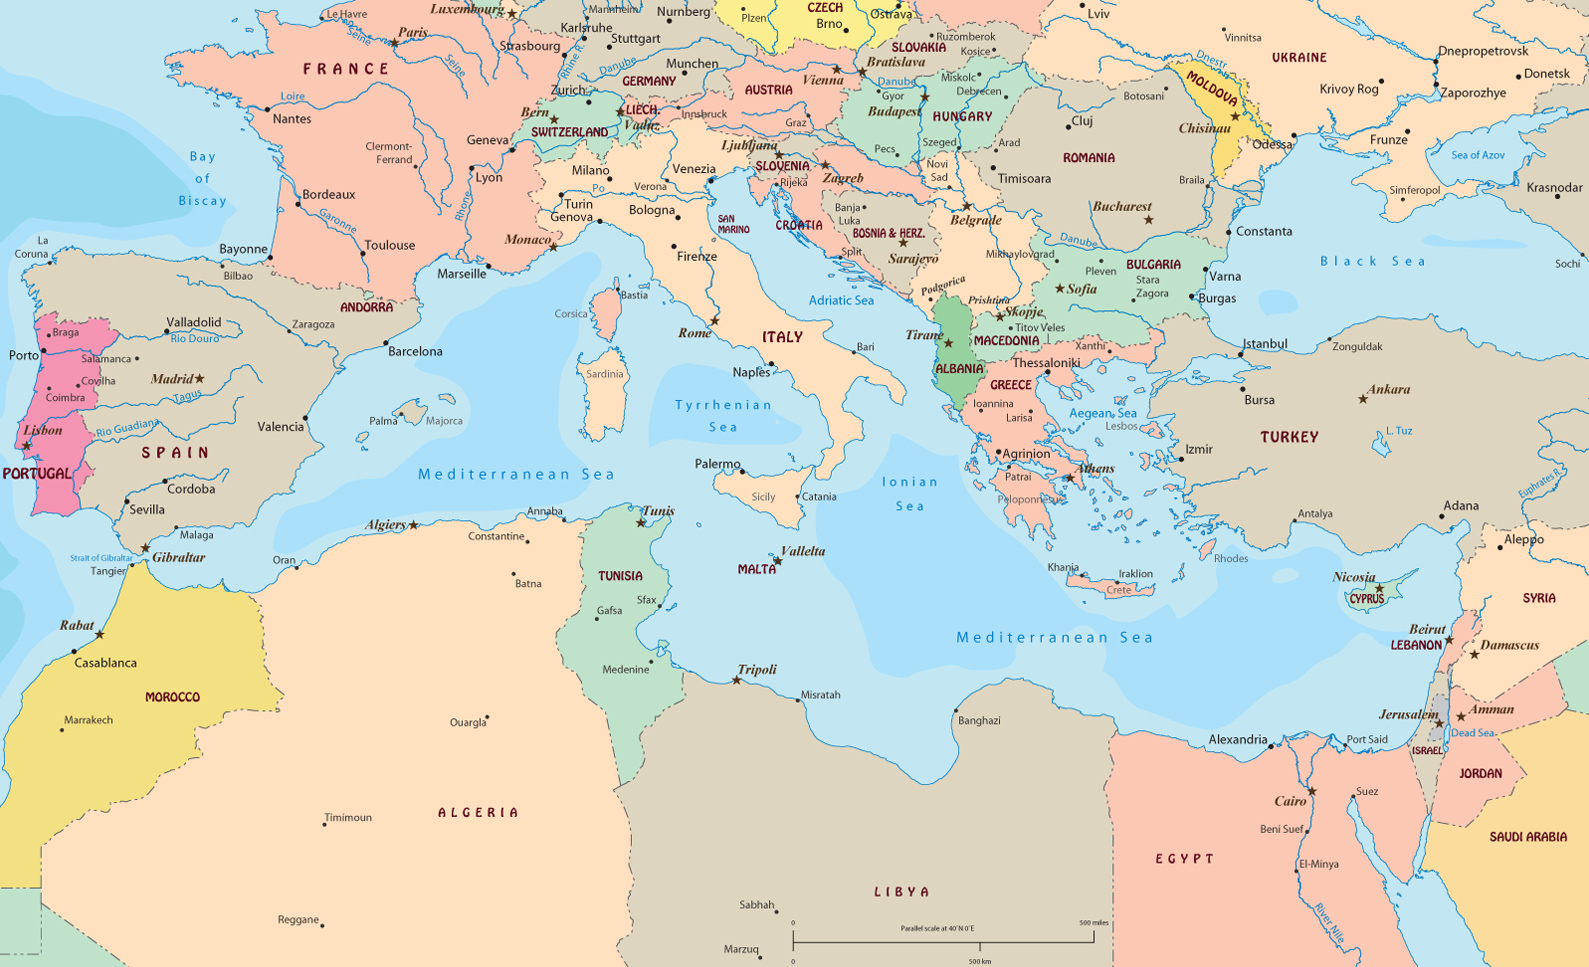 europe and the mediterranean map Political Map of Mediterranean Sea Region